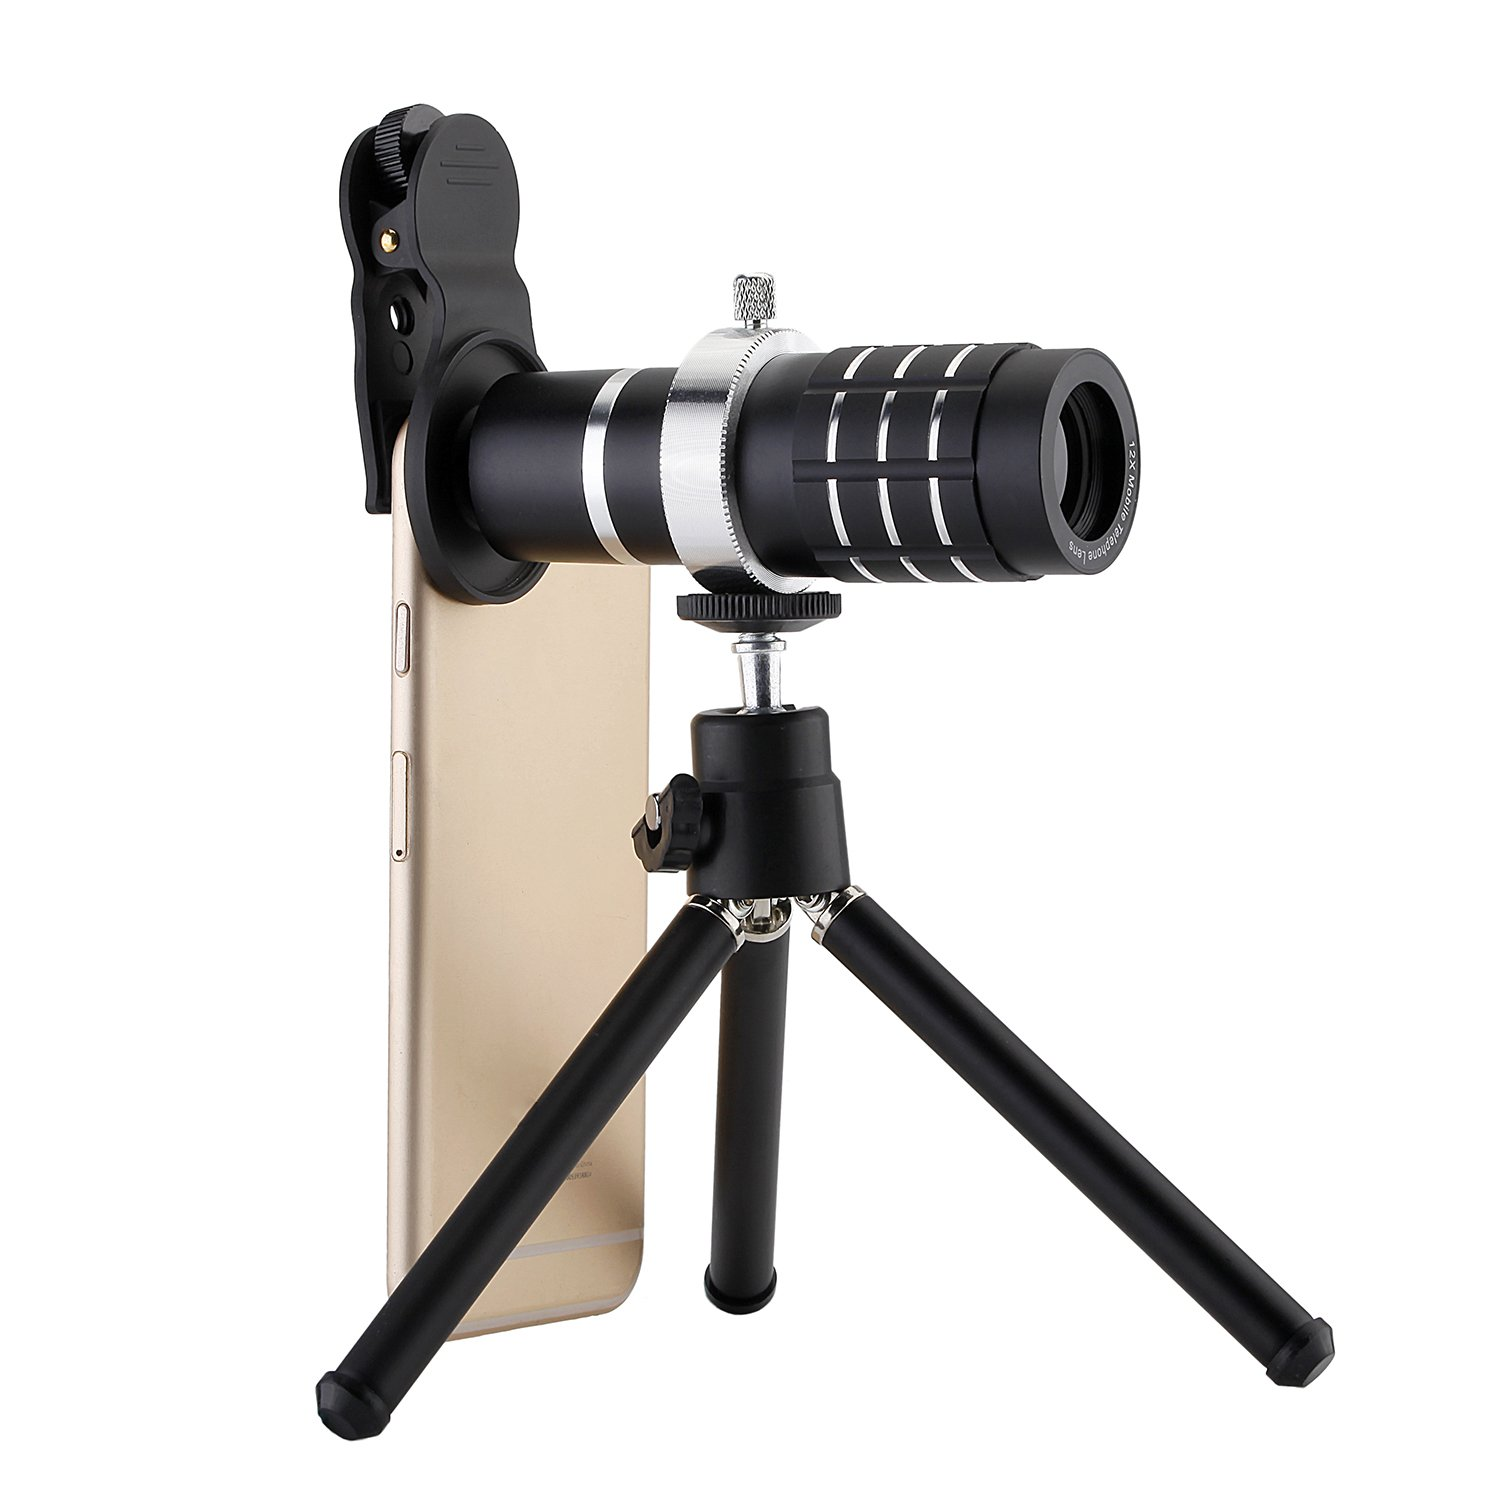 Toogoo Camera Lens Universal Clip-On Phone 12X Optical Zoom Telephoto Lens for iPhone Samsung Huawei Ipad Tablet PC Laptops(Black)